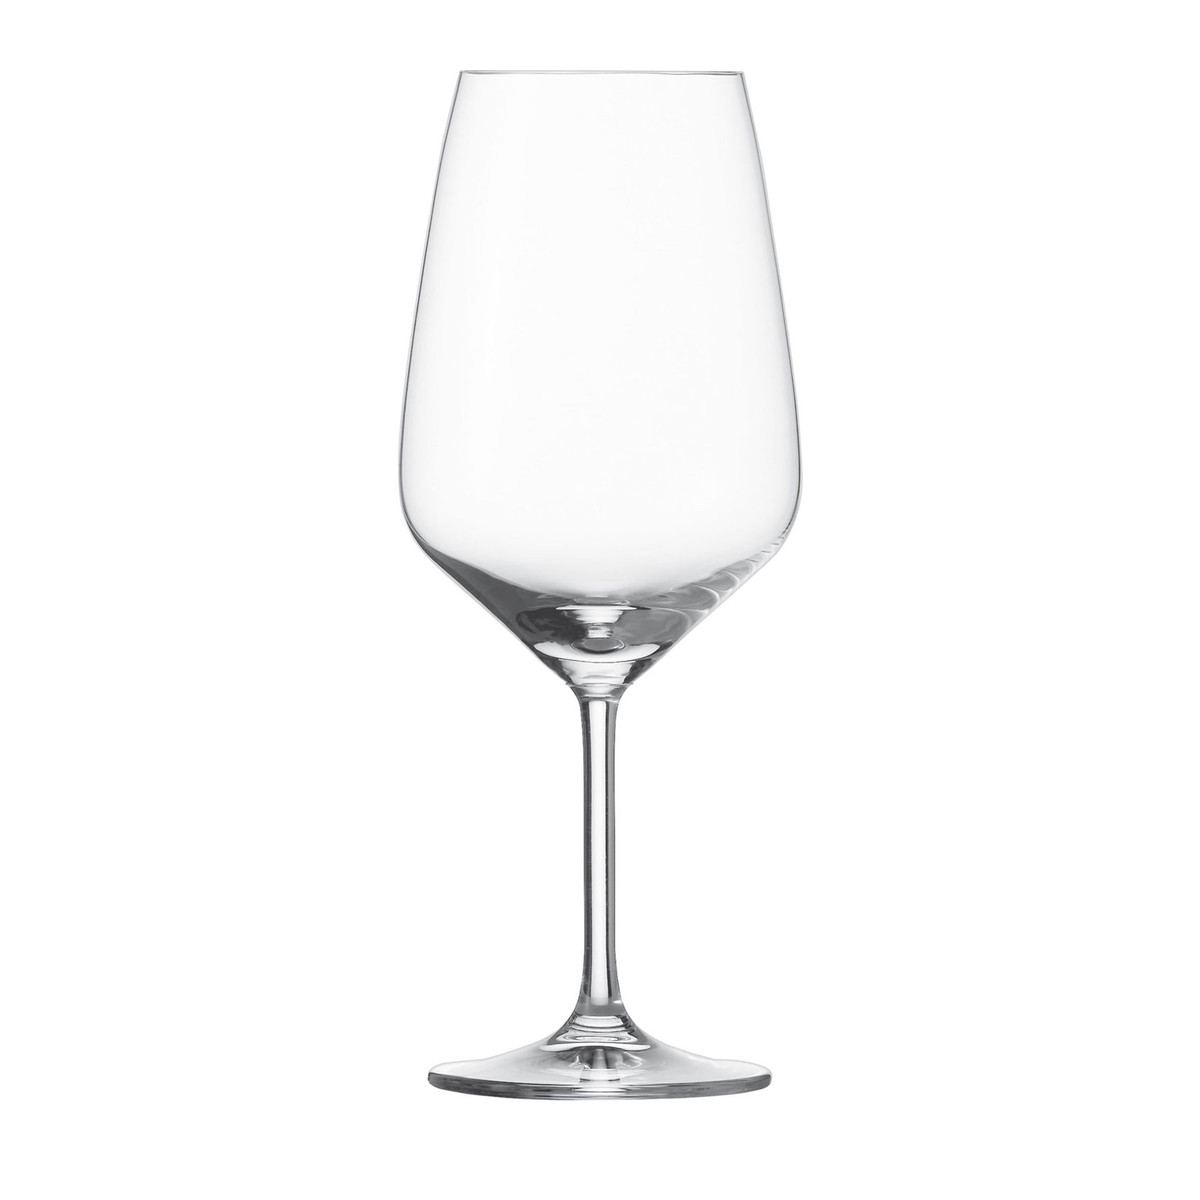 Schott Zwiesel Wine Glasses | Best All Purpose Wine Glass | Schott Zwiesel Pure Bordeaux